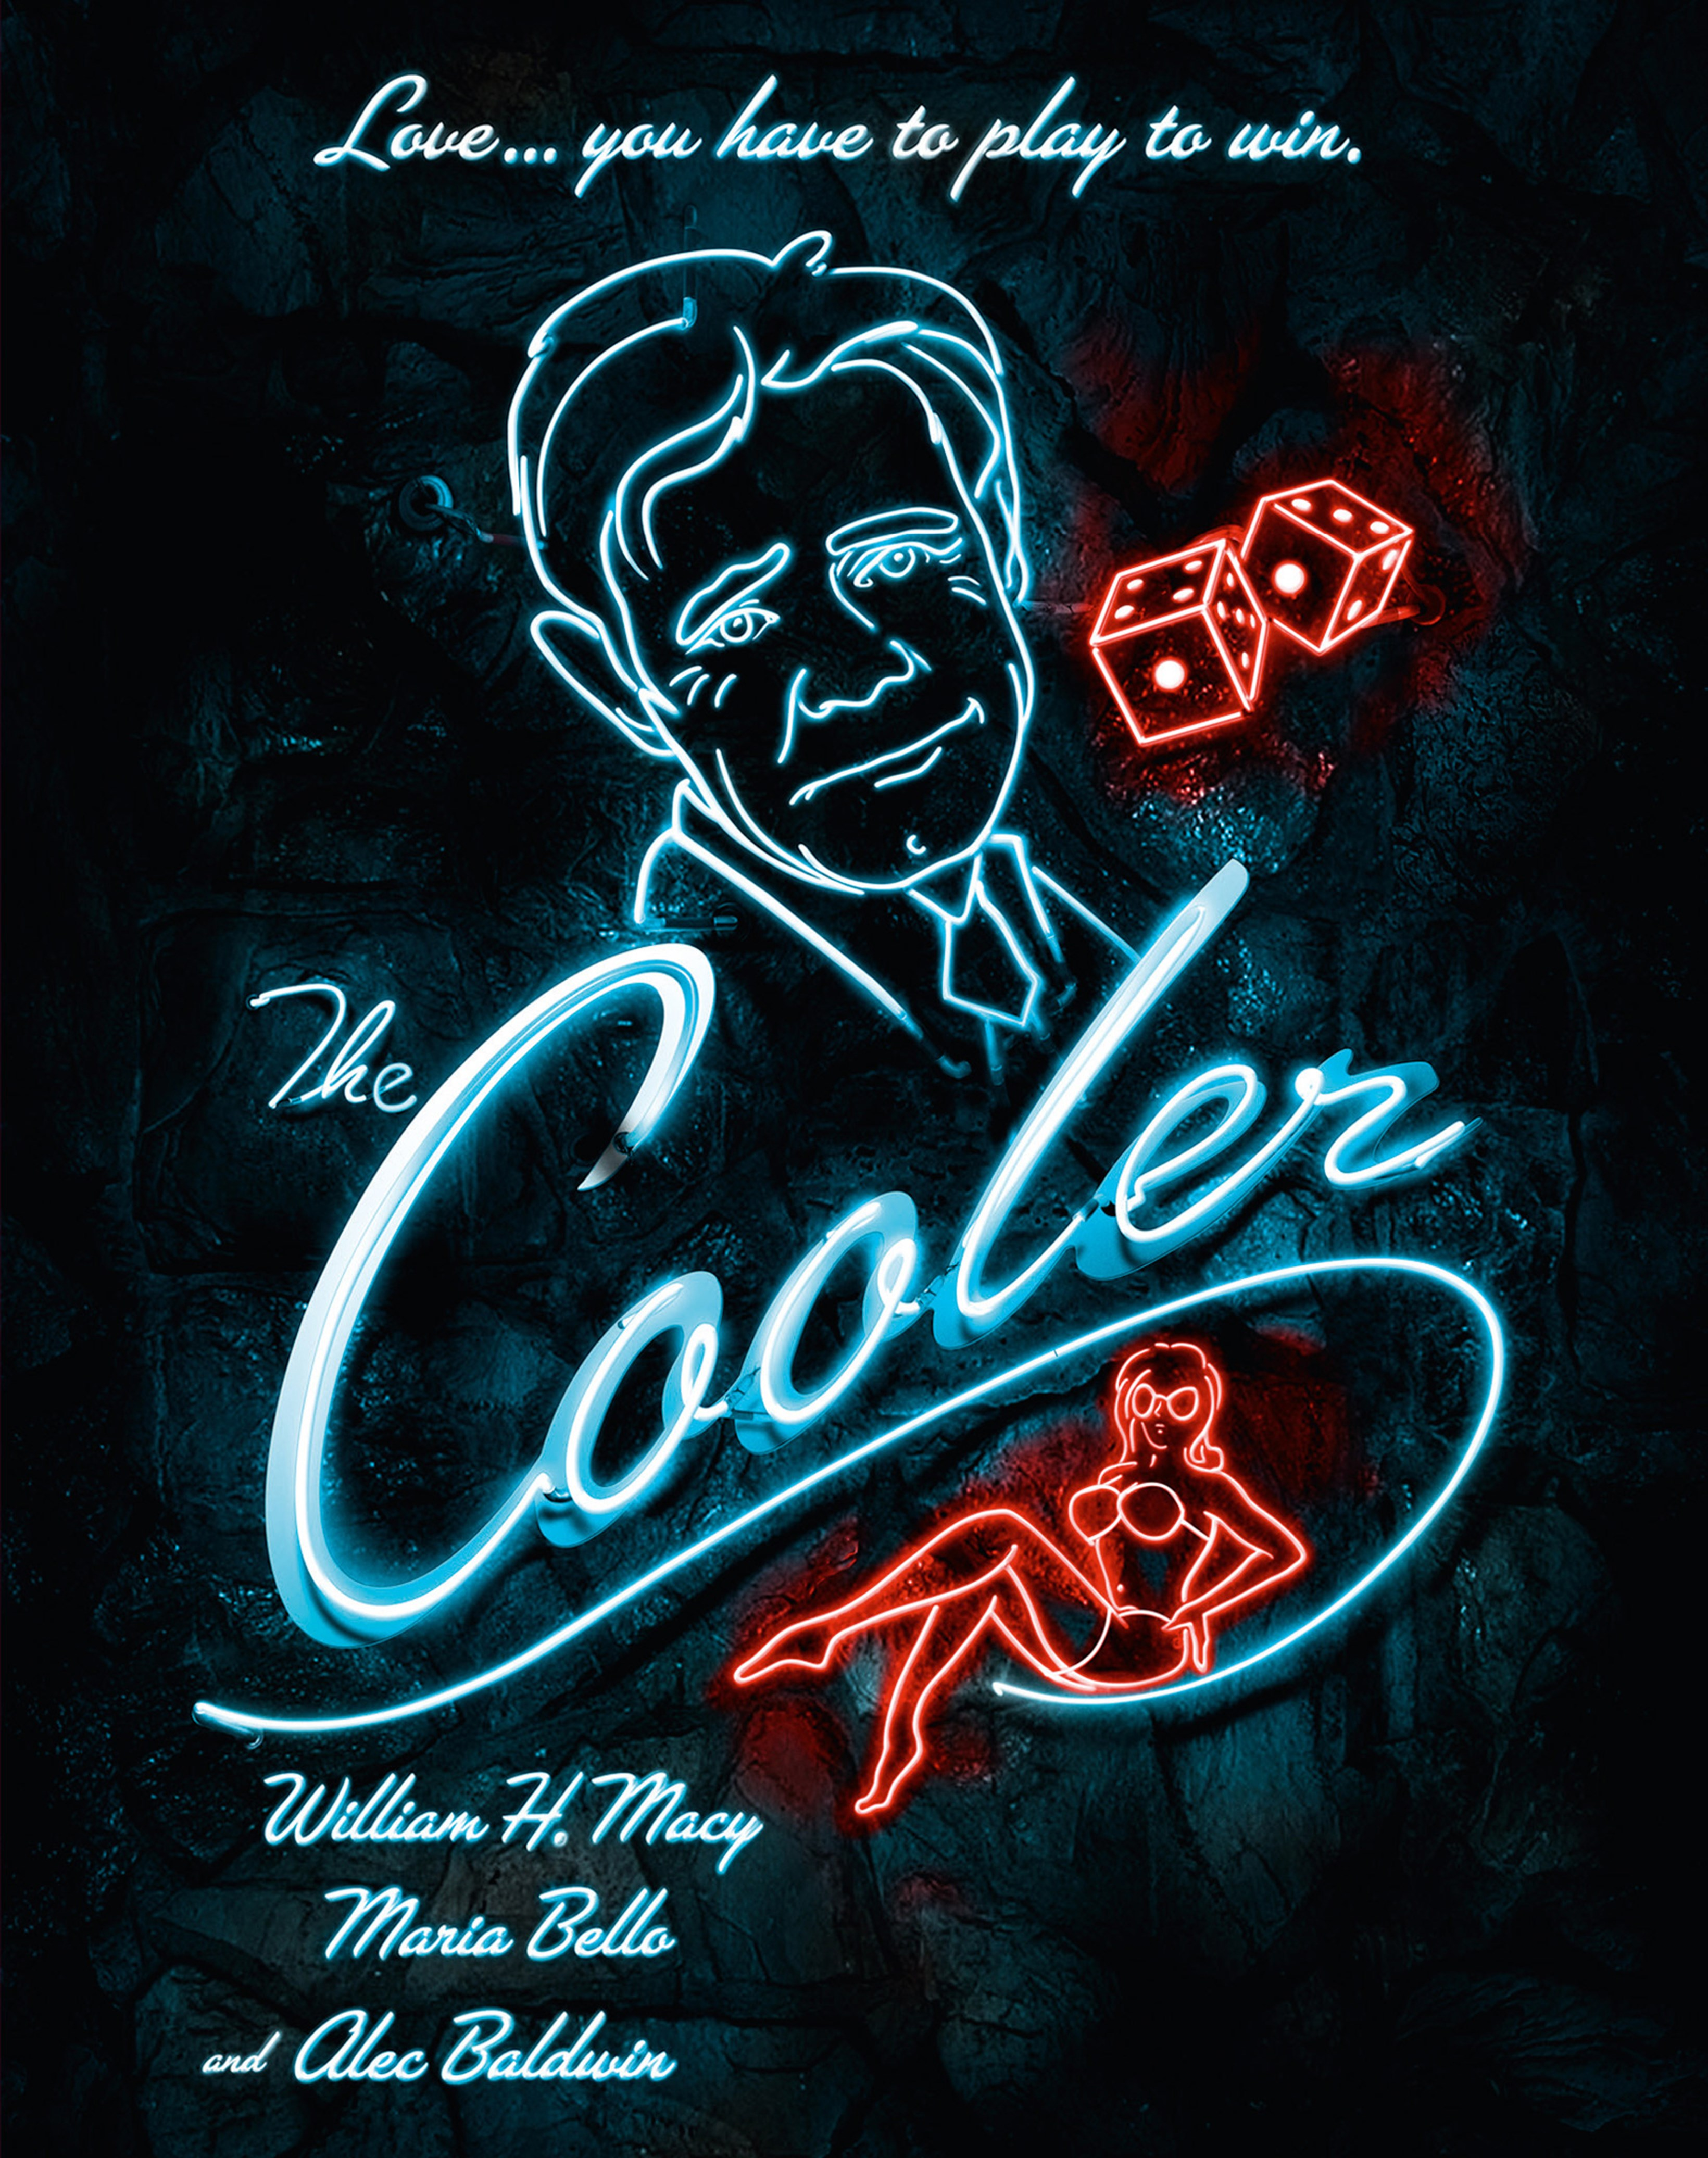 The Cooler - 2